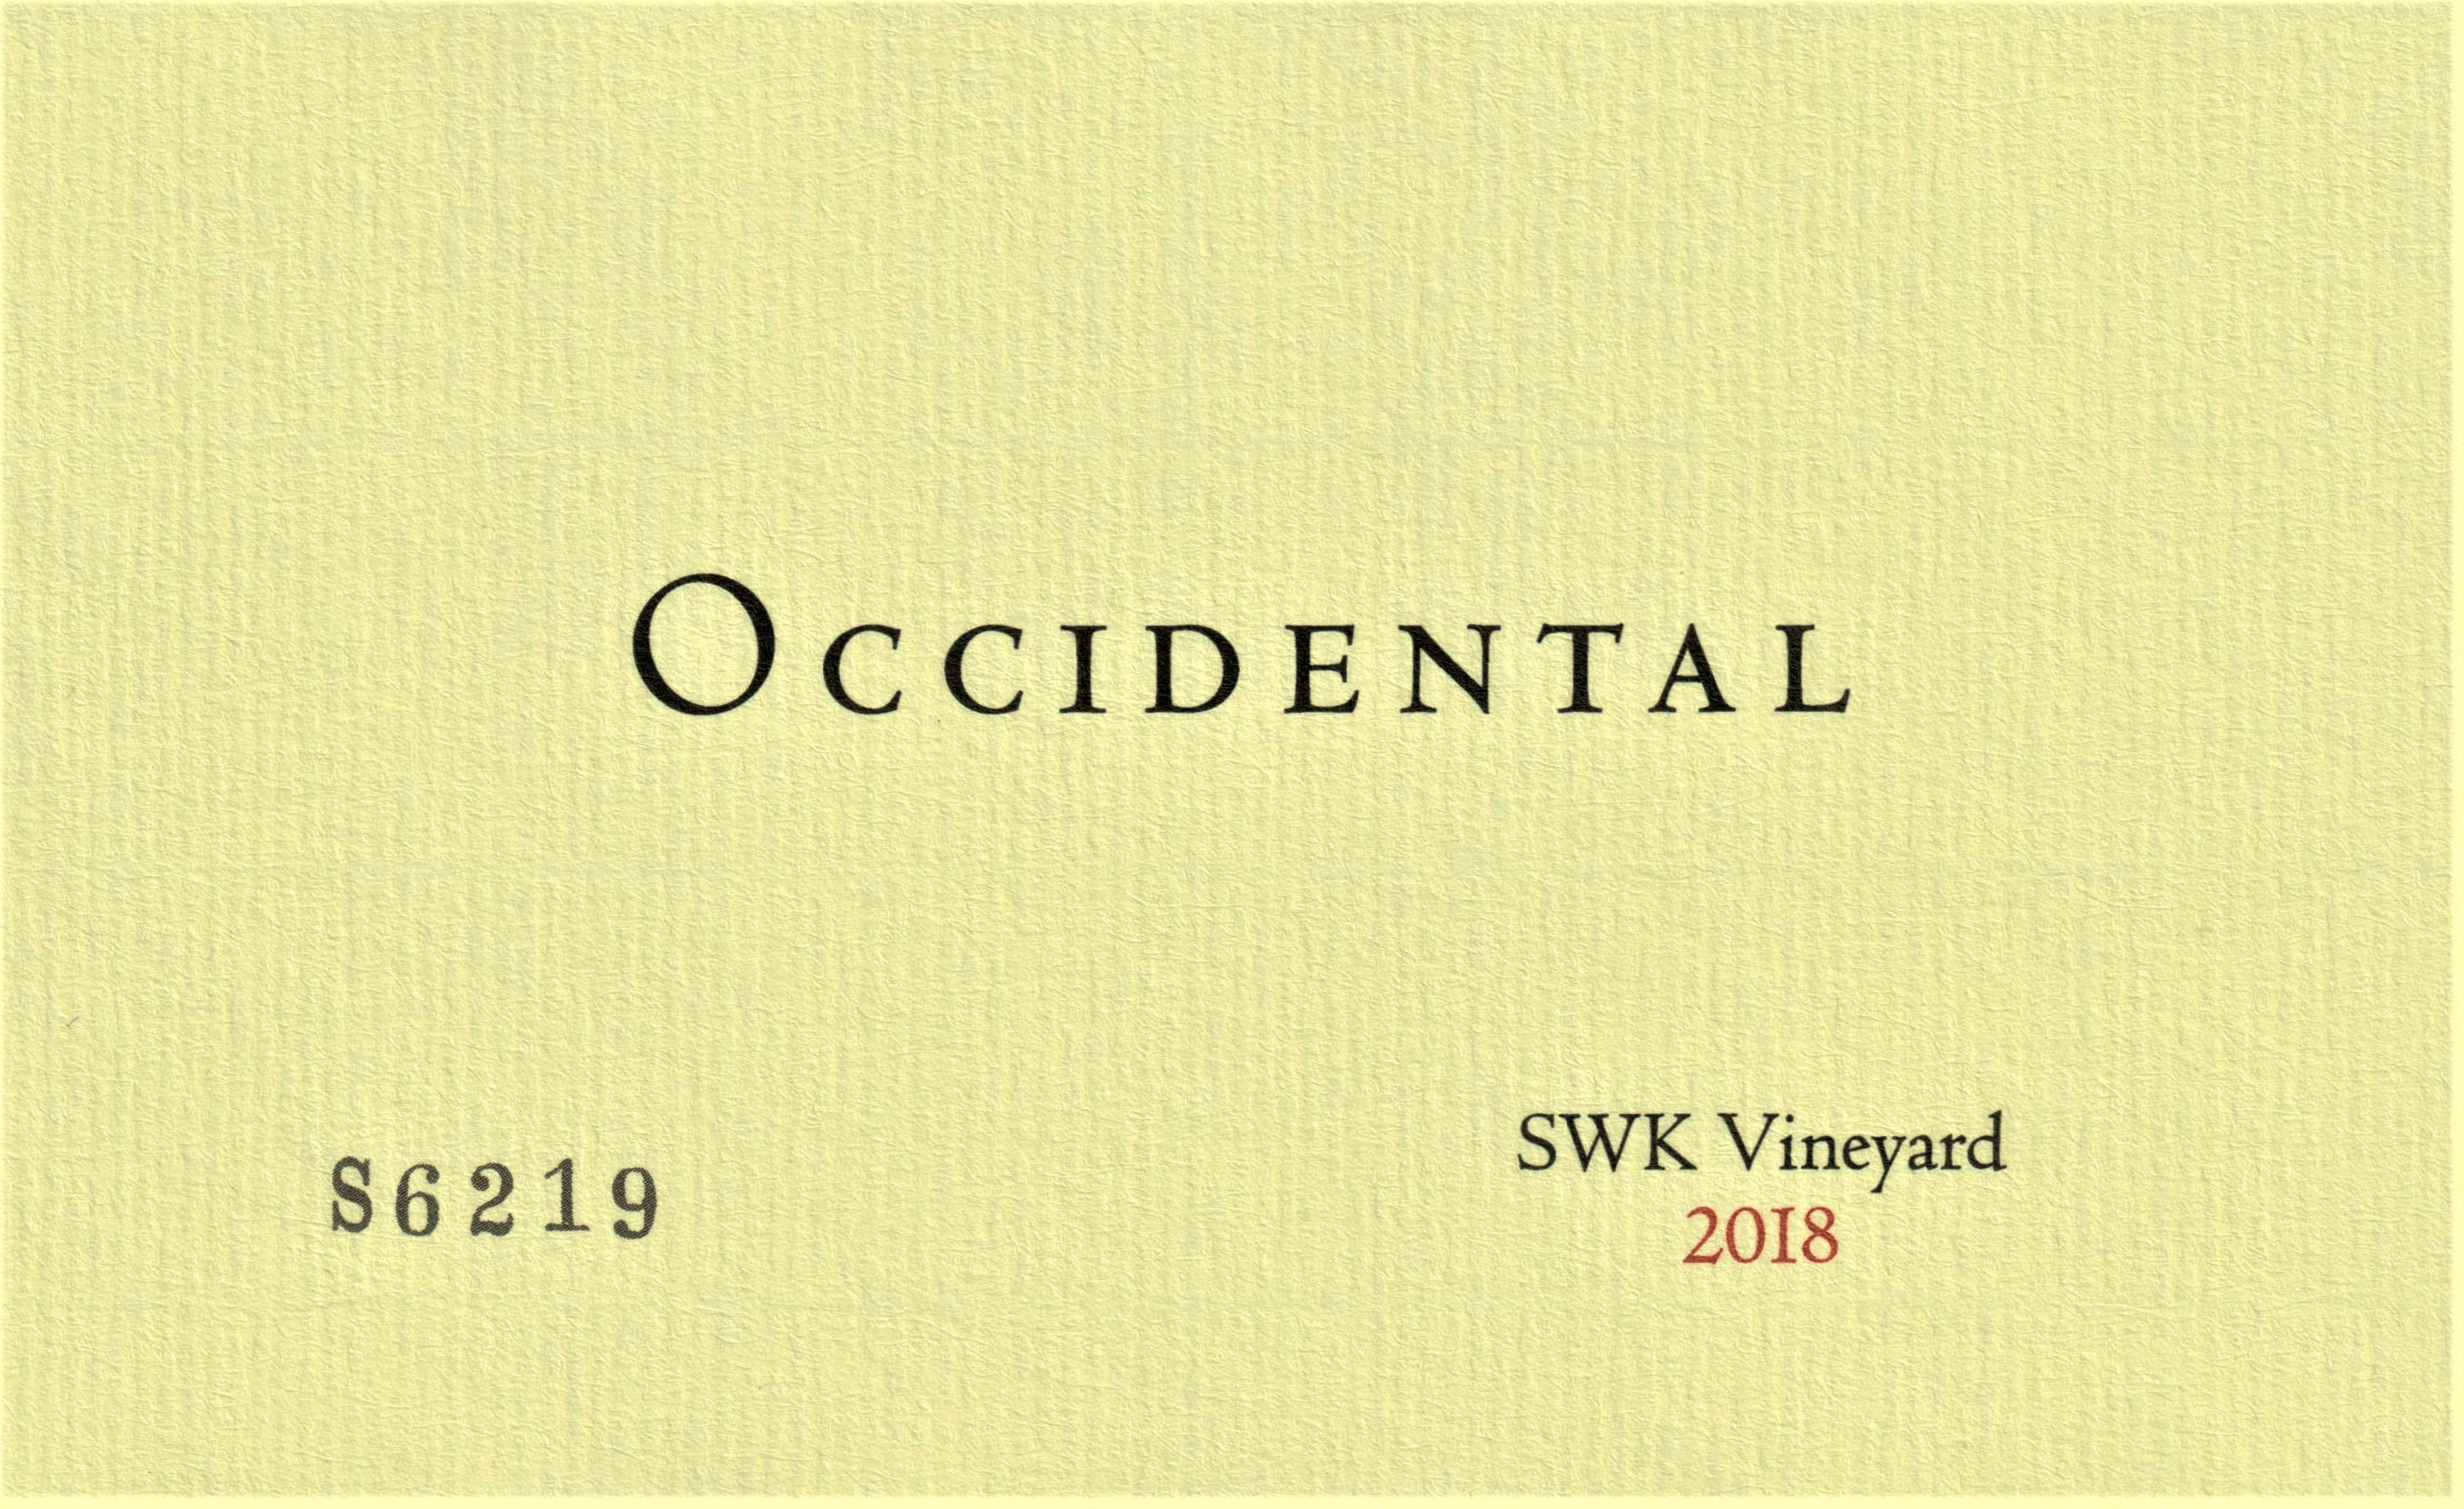 2015 Occidental Pinot Noir SWK Vineyard